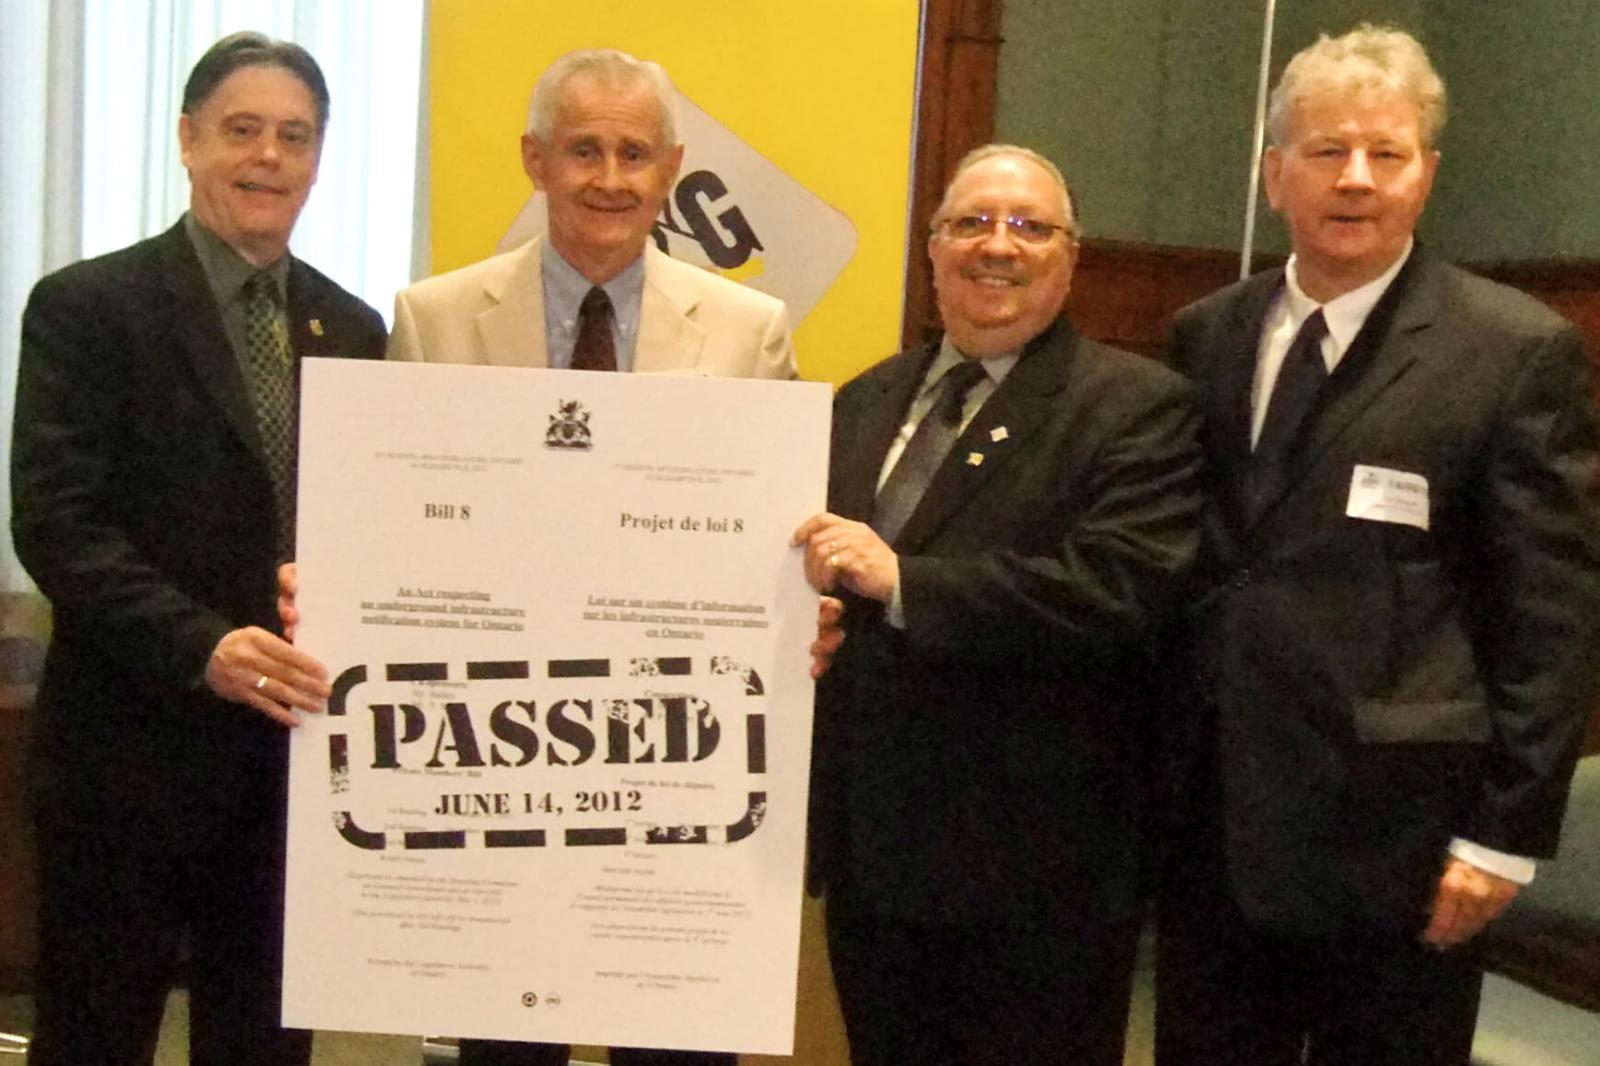 Celebrating the passage of Bill 8 at Queen's Park, June 14, are from left MPP Bob Bailey, co-sponsor of Bill 8, ORCGA board of directors member Terry Murphy, who represents the landscape industry, and LO, MPP Paul Miller, co-sponsor of Bill 8, and ORCGA president Jim  Douglas.